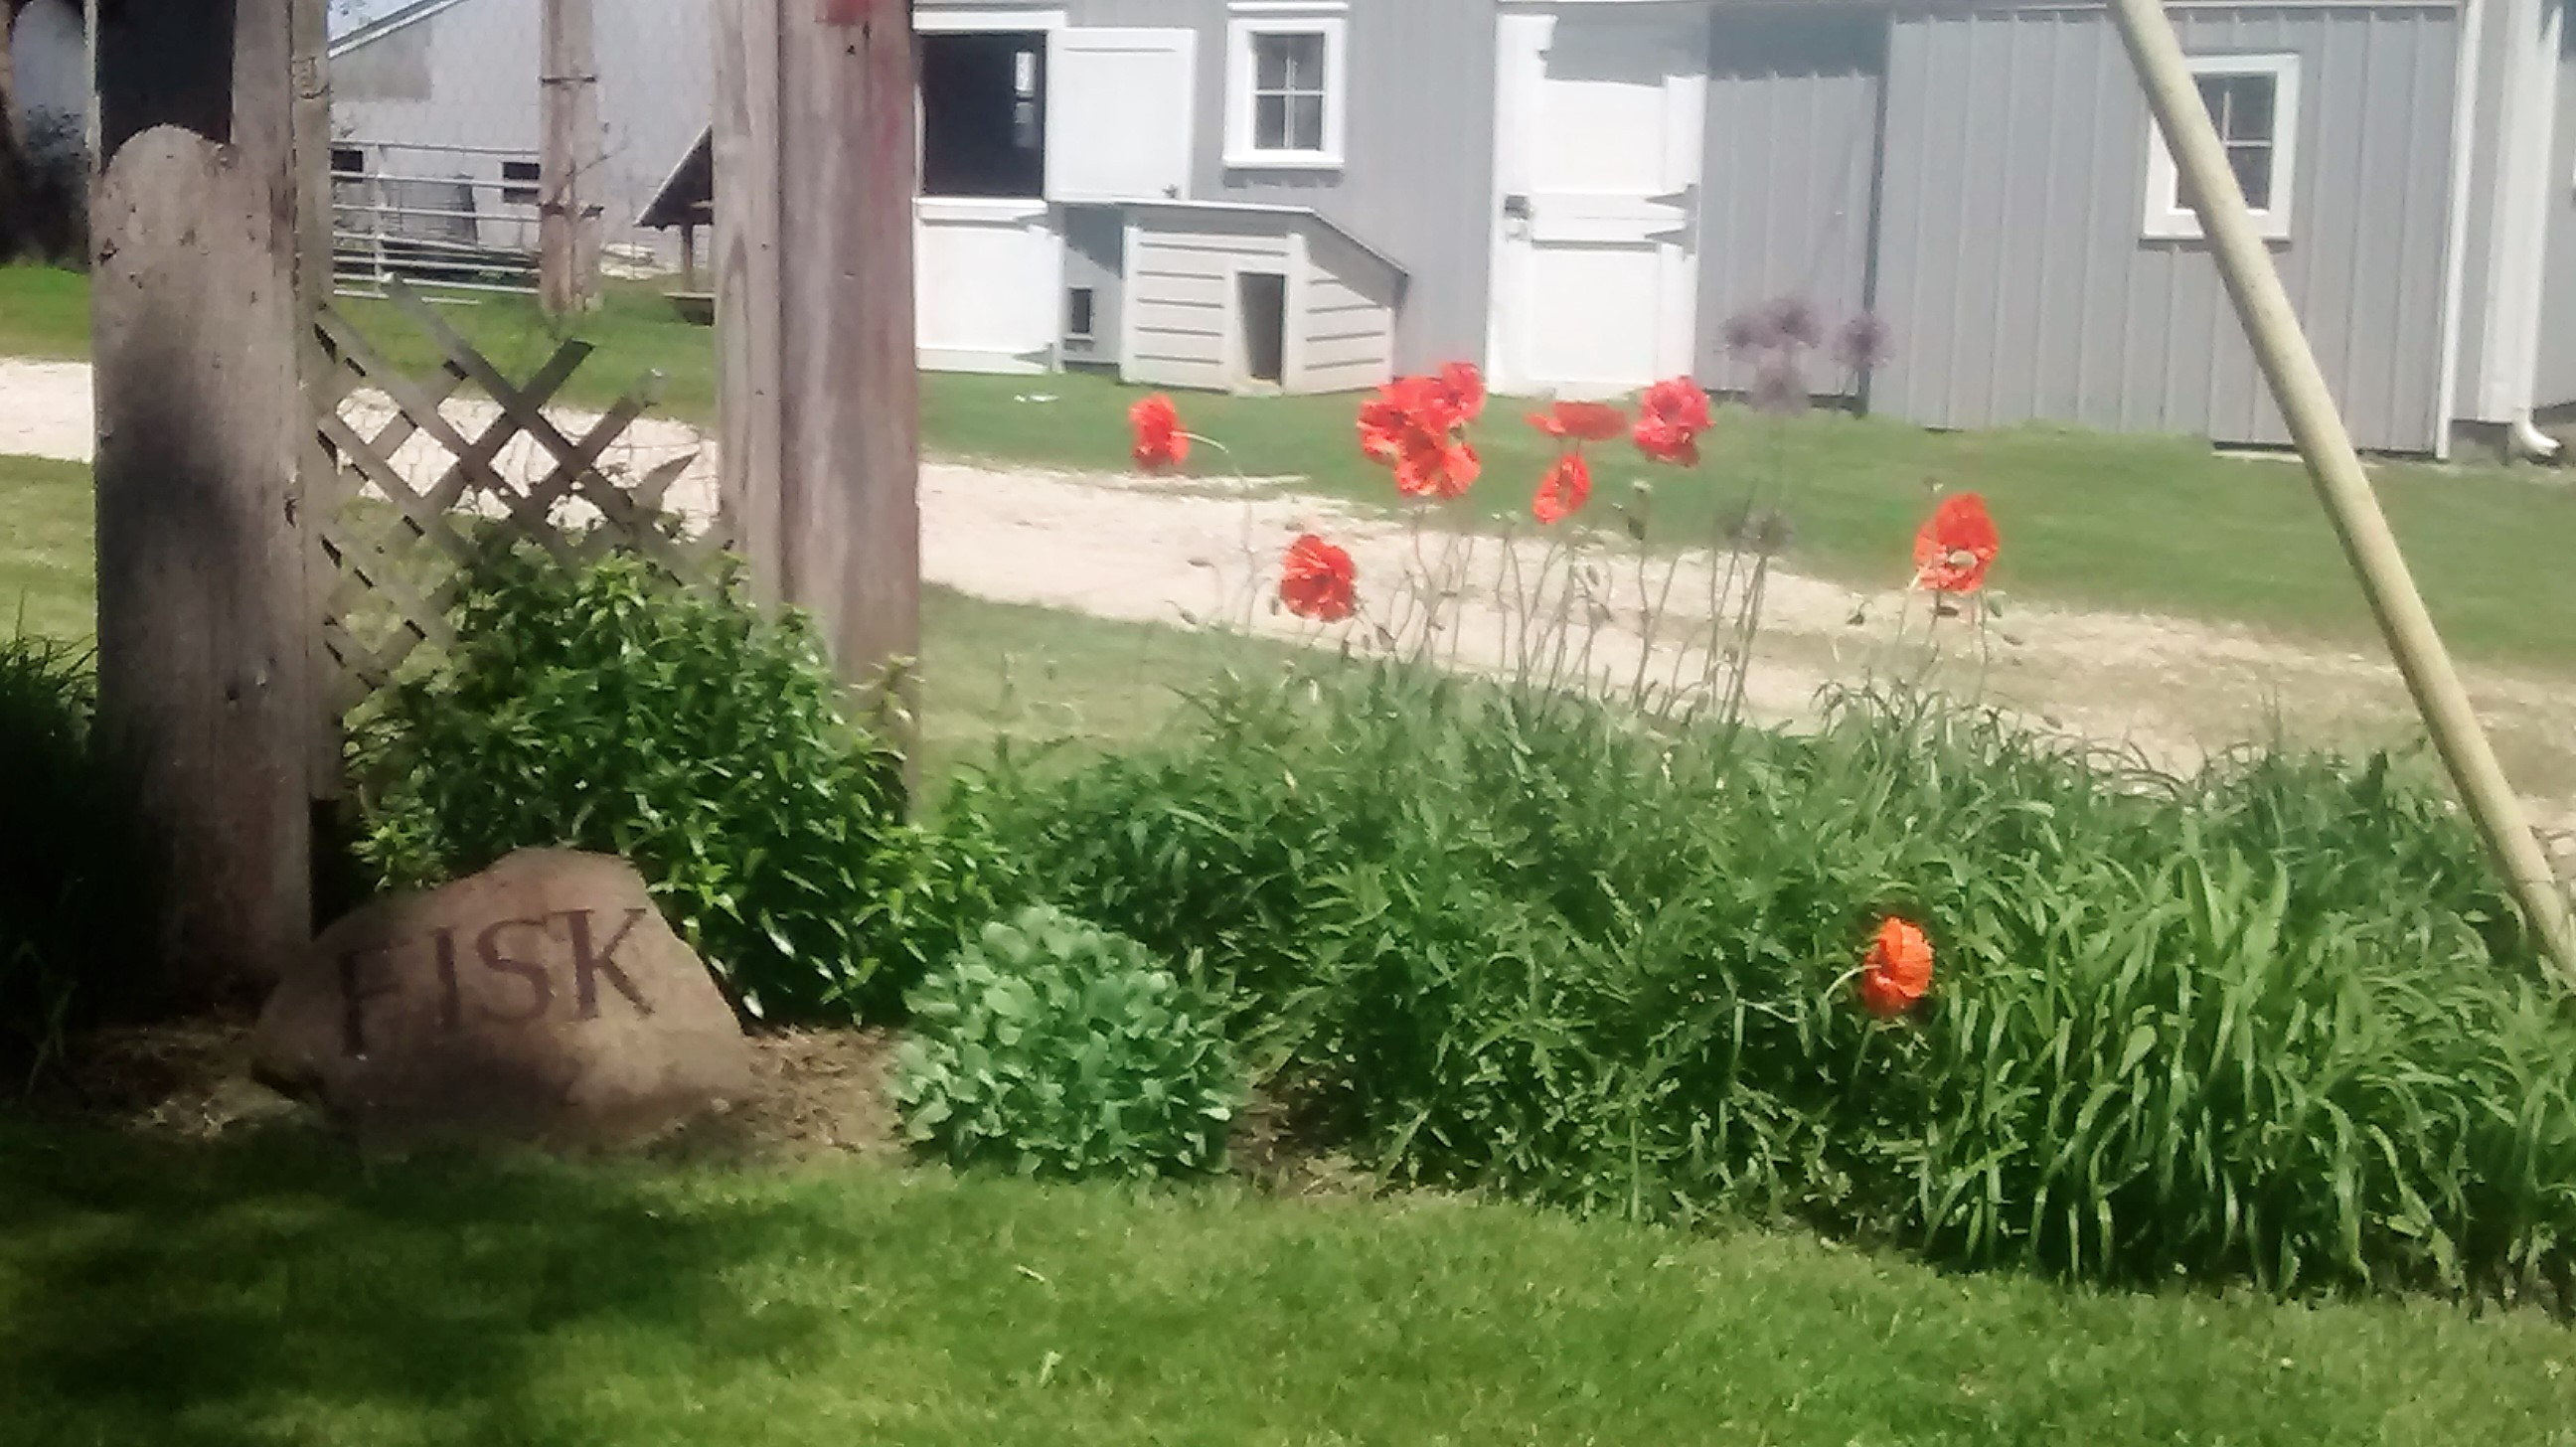 FISK-Barn-and-Poppies.jpg